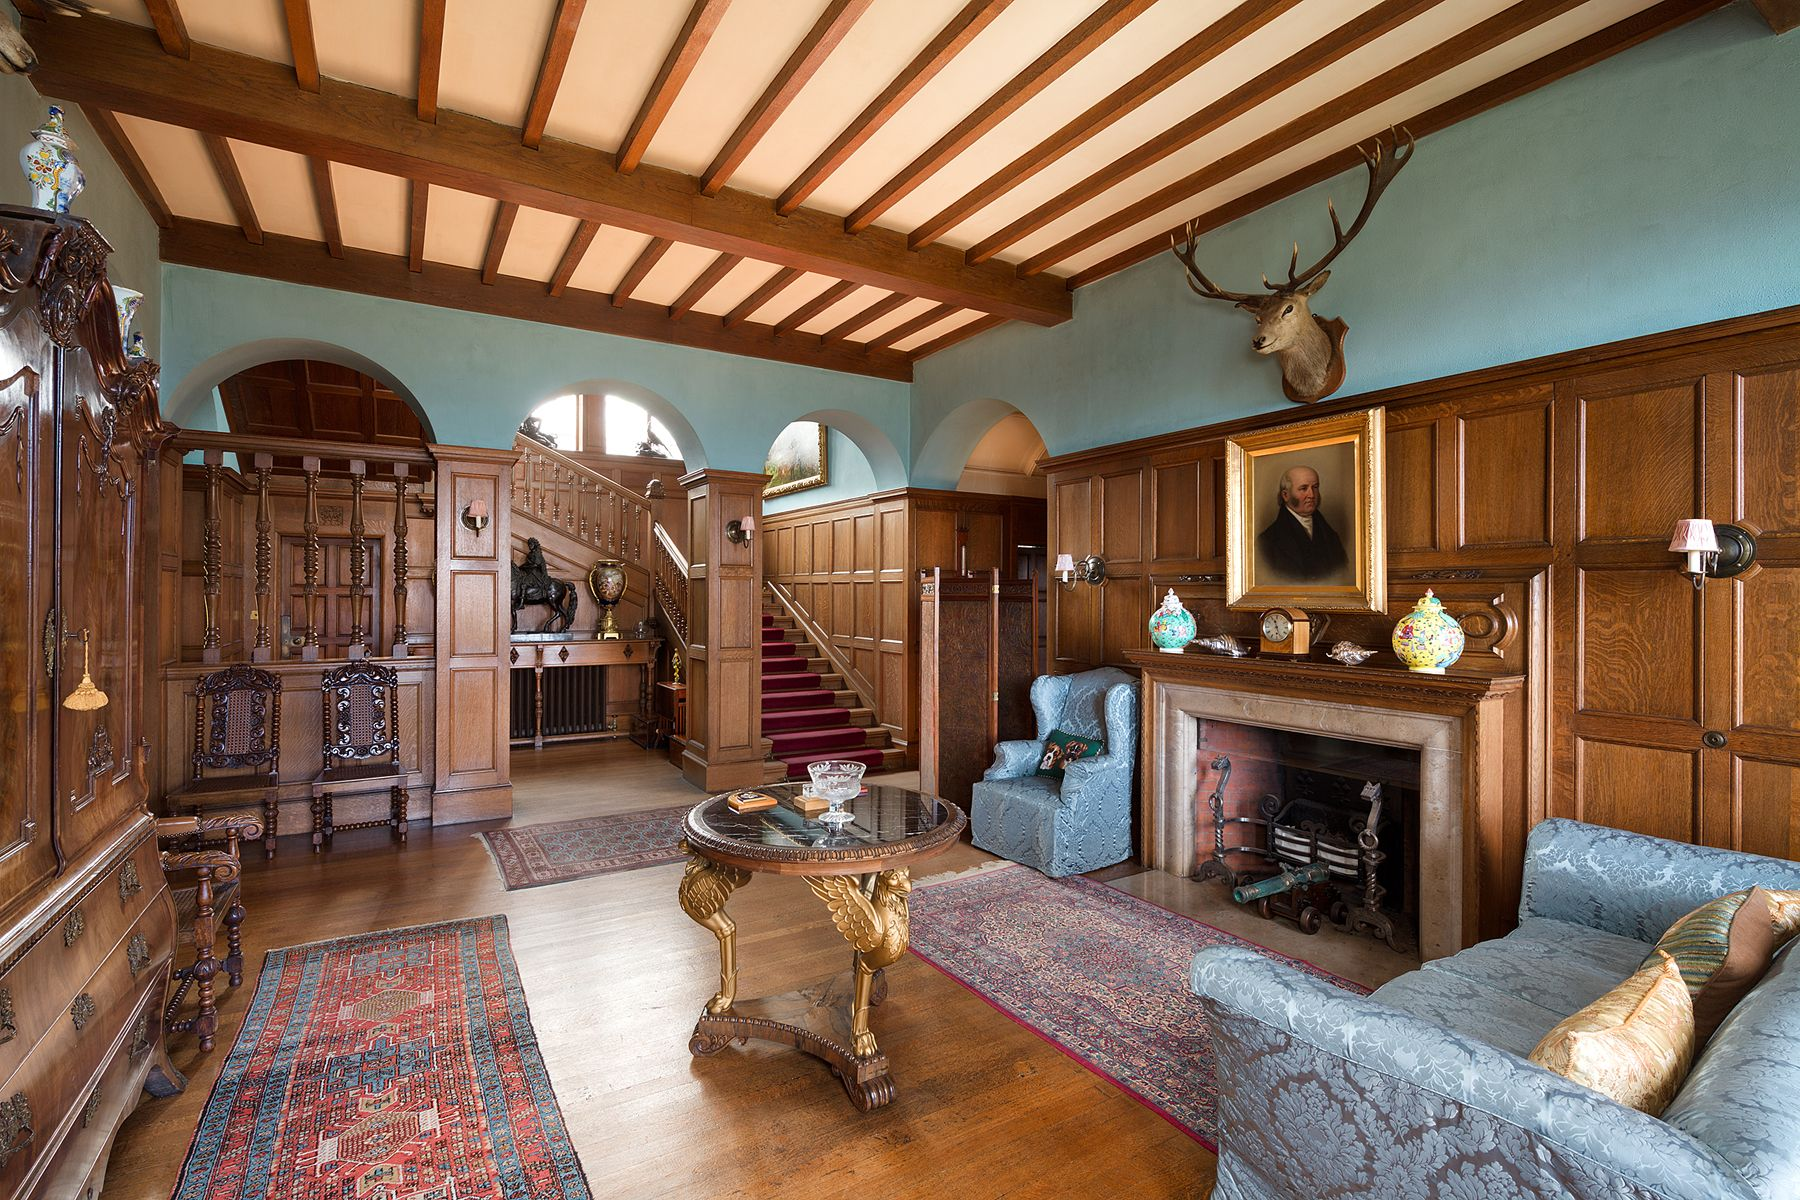 Castle Interior Design Property http://www.worldpropertyjournal/newsassets/castleinterior2